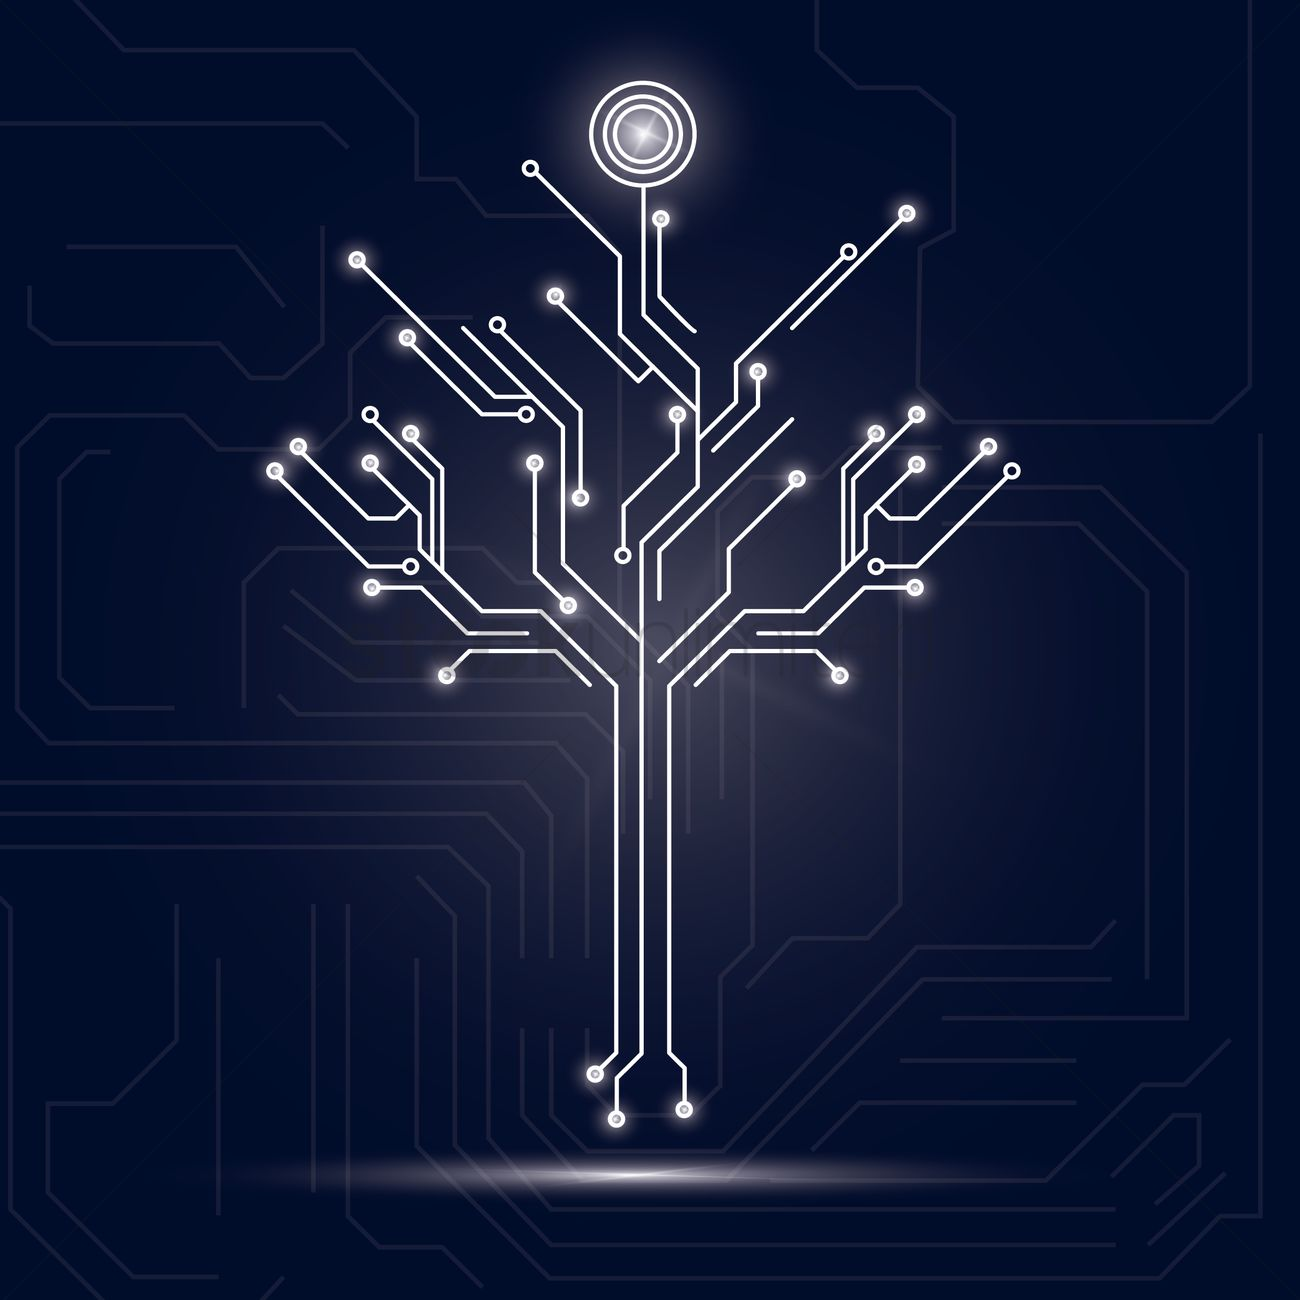 Tree design on circuit board background Vector Image   1646948 1300x1300